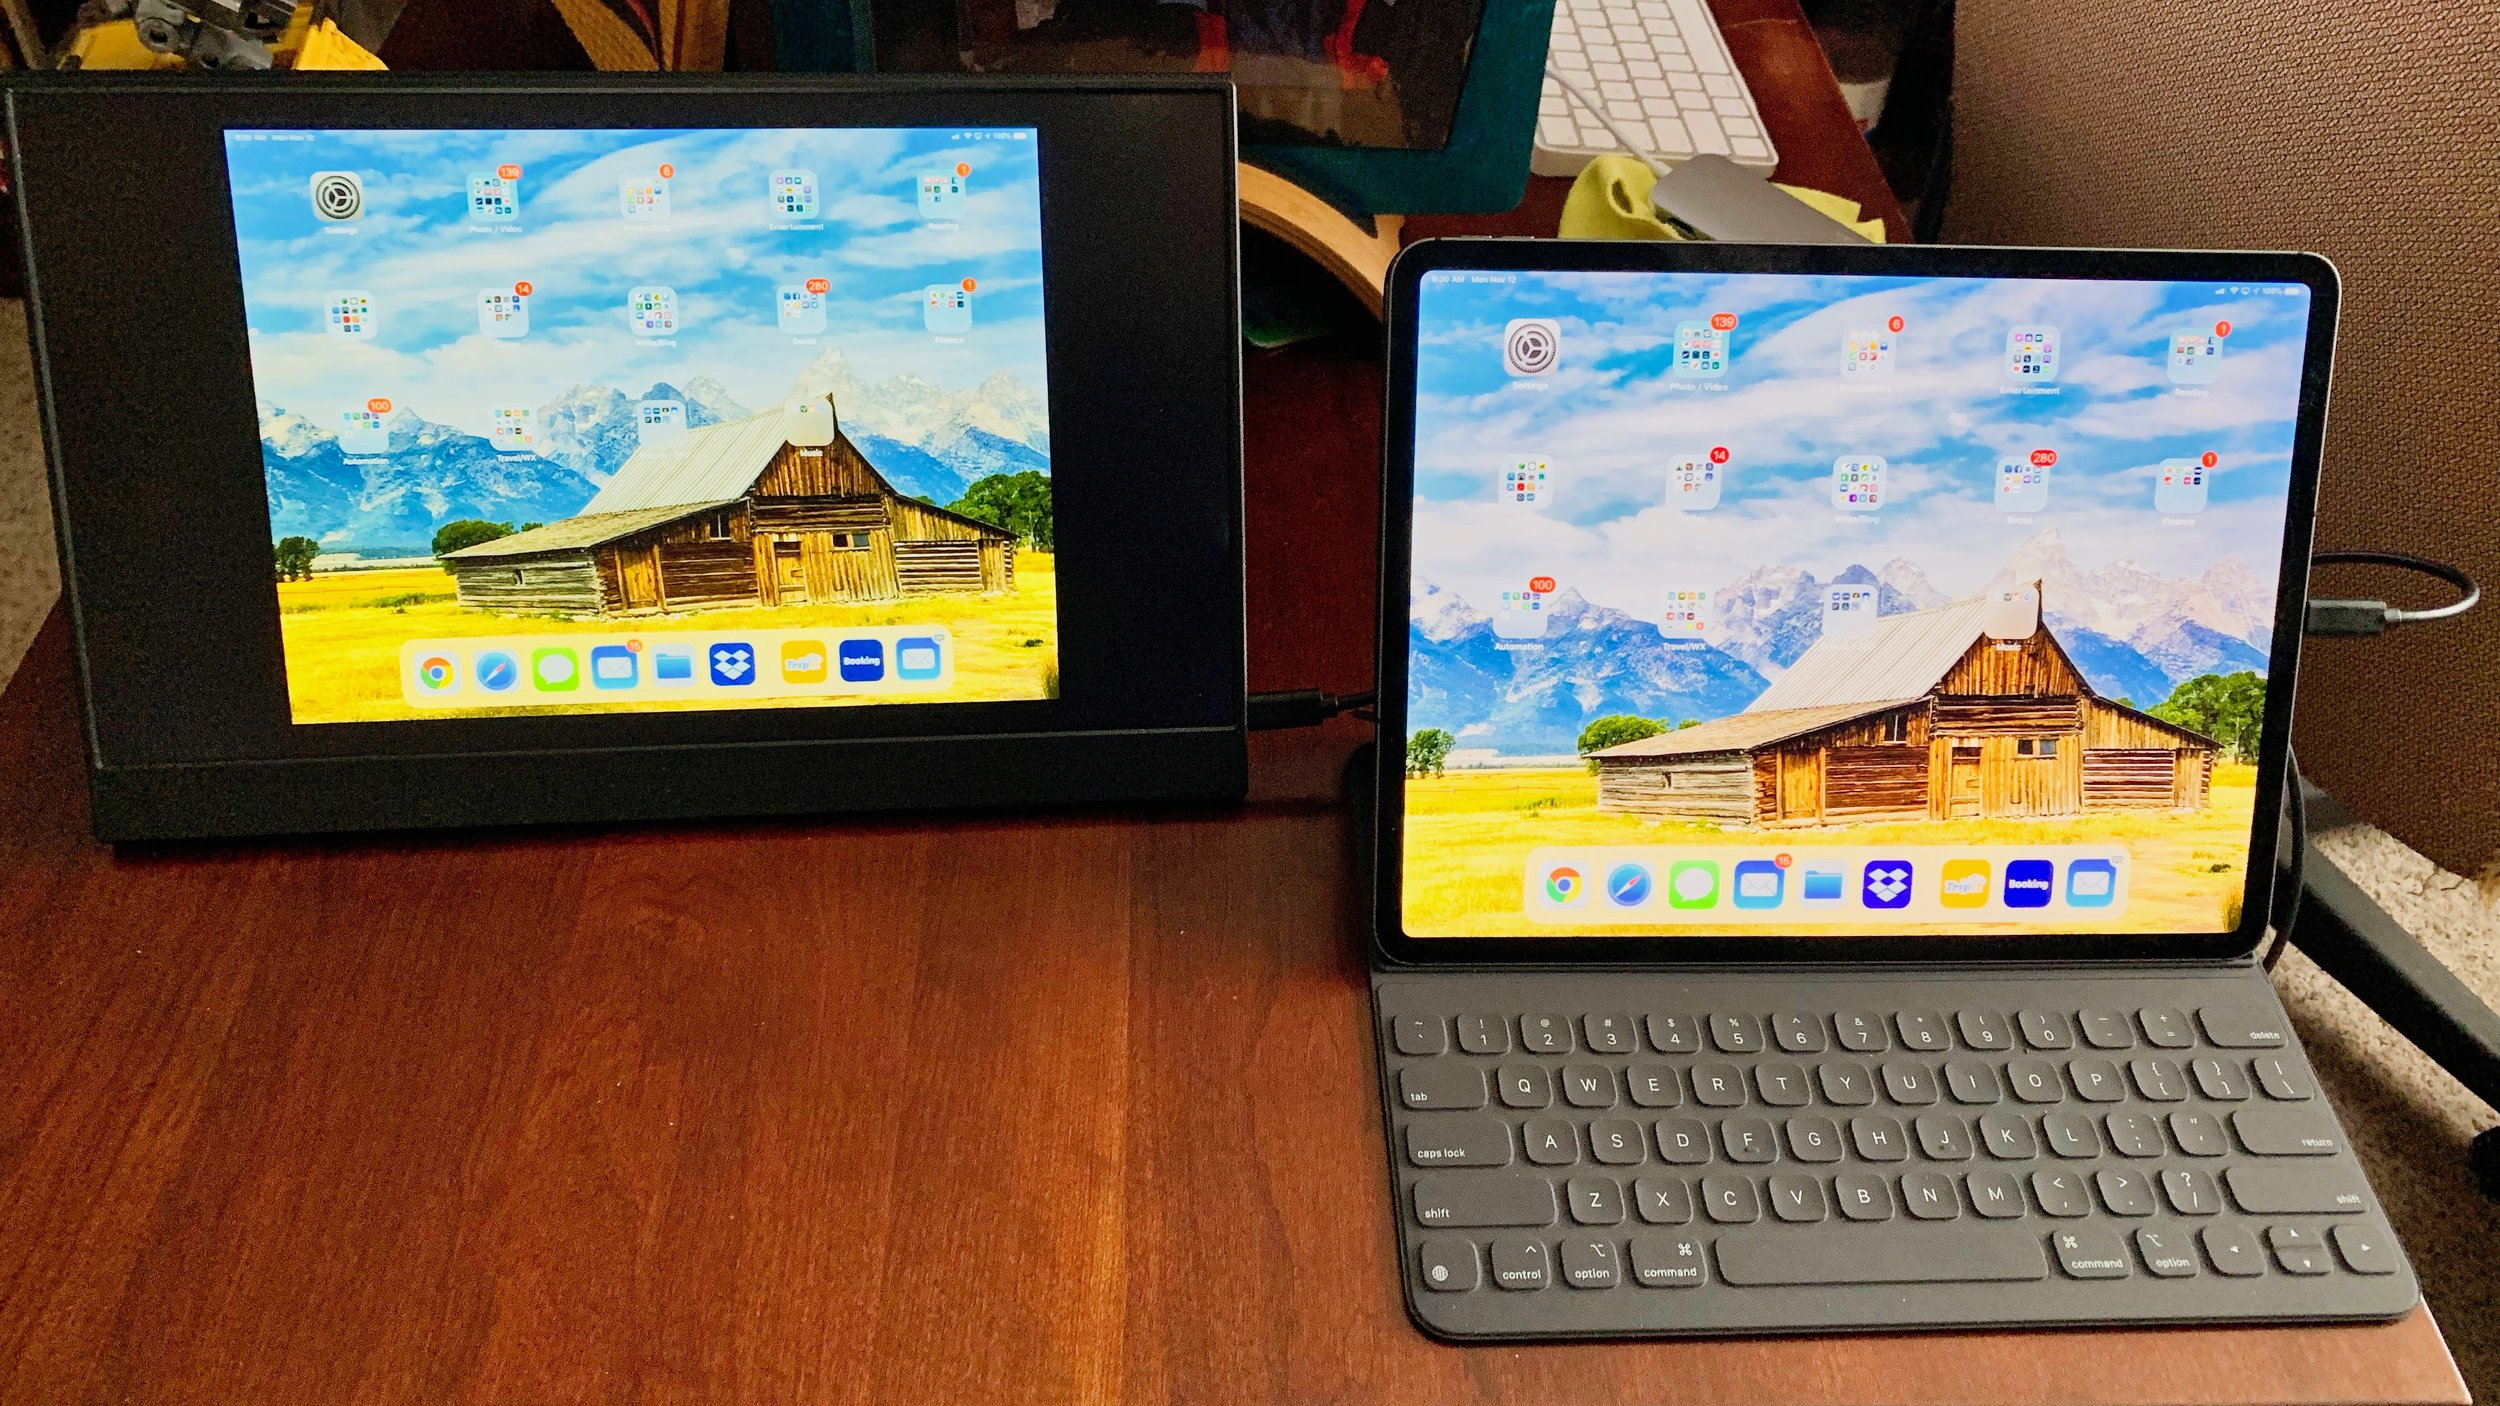 The Vinpok Split can be used as a mirrored screen for the new USB-C iPad Pro